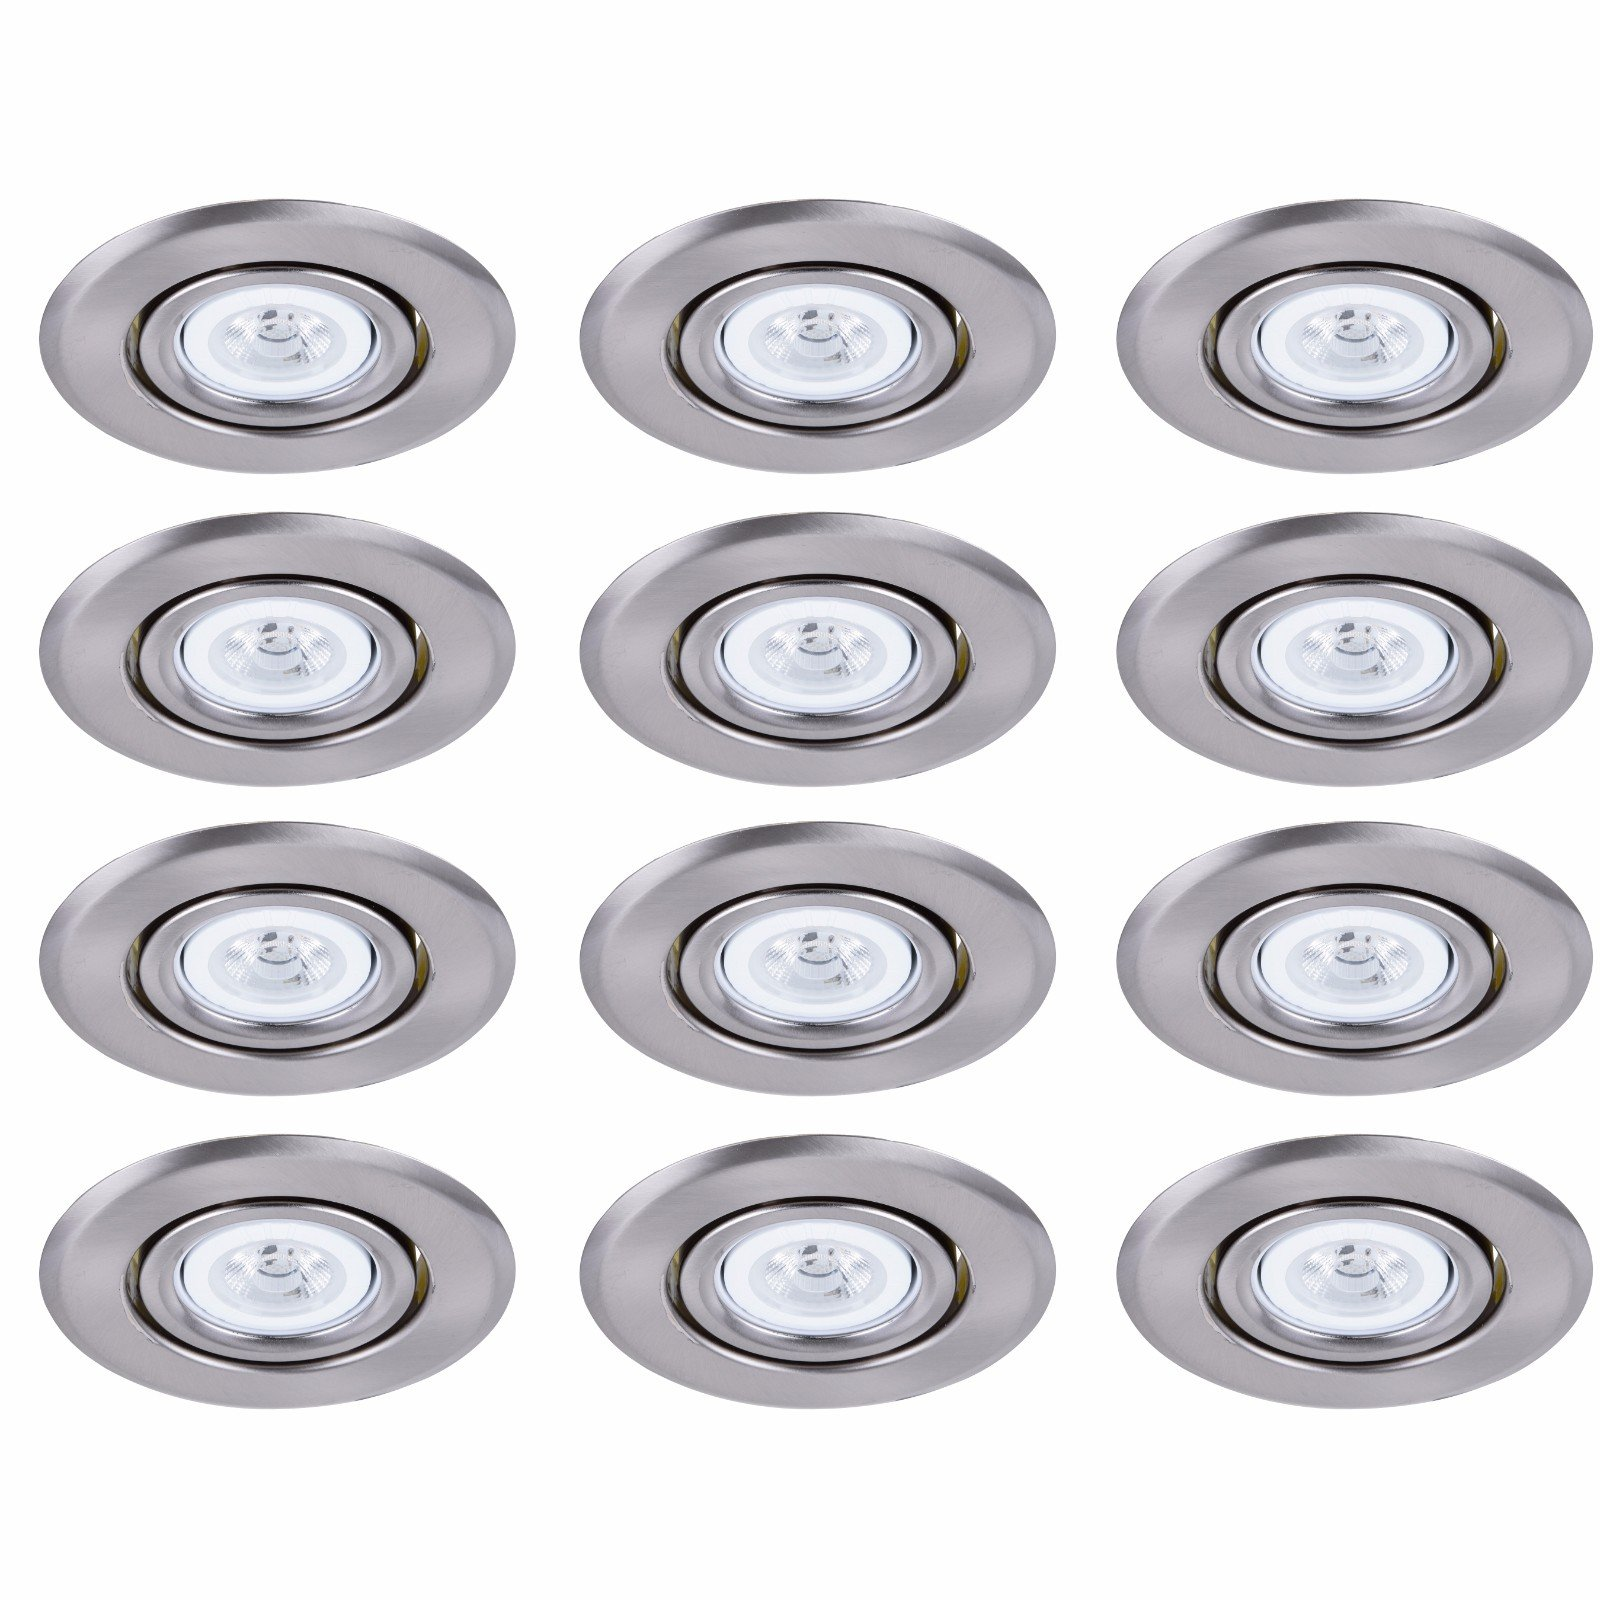 Elitco Lighting R4-489BN-12PK Recessed-Light-Fixture-Trims 4'' Brushed Nickel 35 Degree Adjustable with Gimbal Ring, fits PAR20/R20/E26 12 Pack